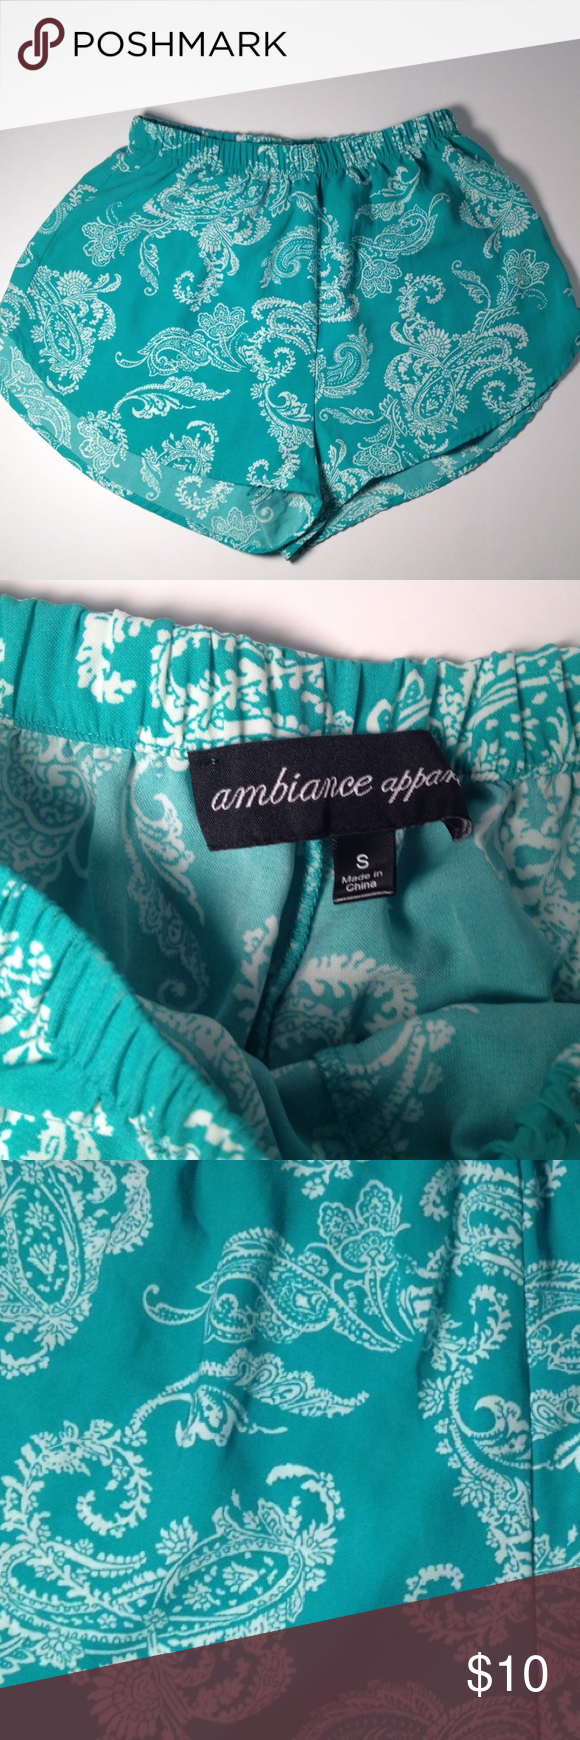 Ambiance Apparel Teal and White Shorts Ambiance Apparel Teal and White Shorts. Size S and composition is 100% polyester. Inseam is roughly 2 inches Ambiance Apparel Shorts